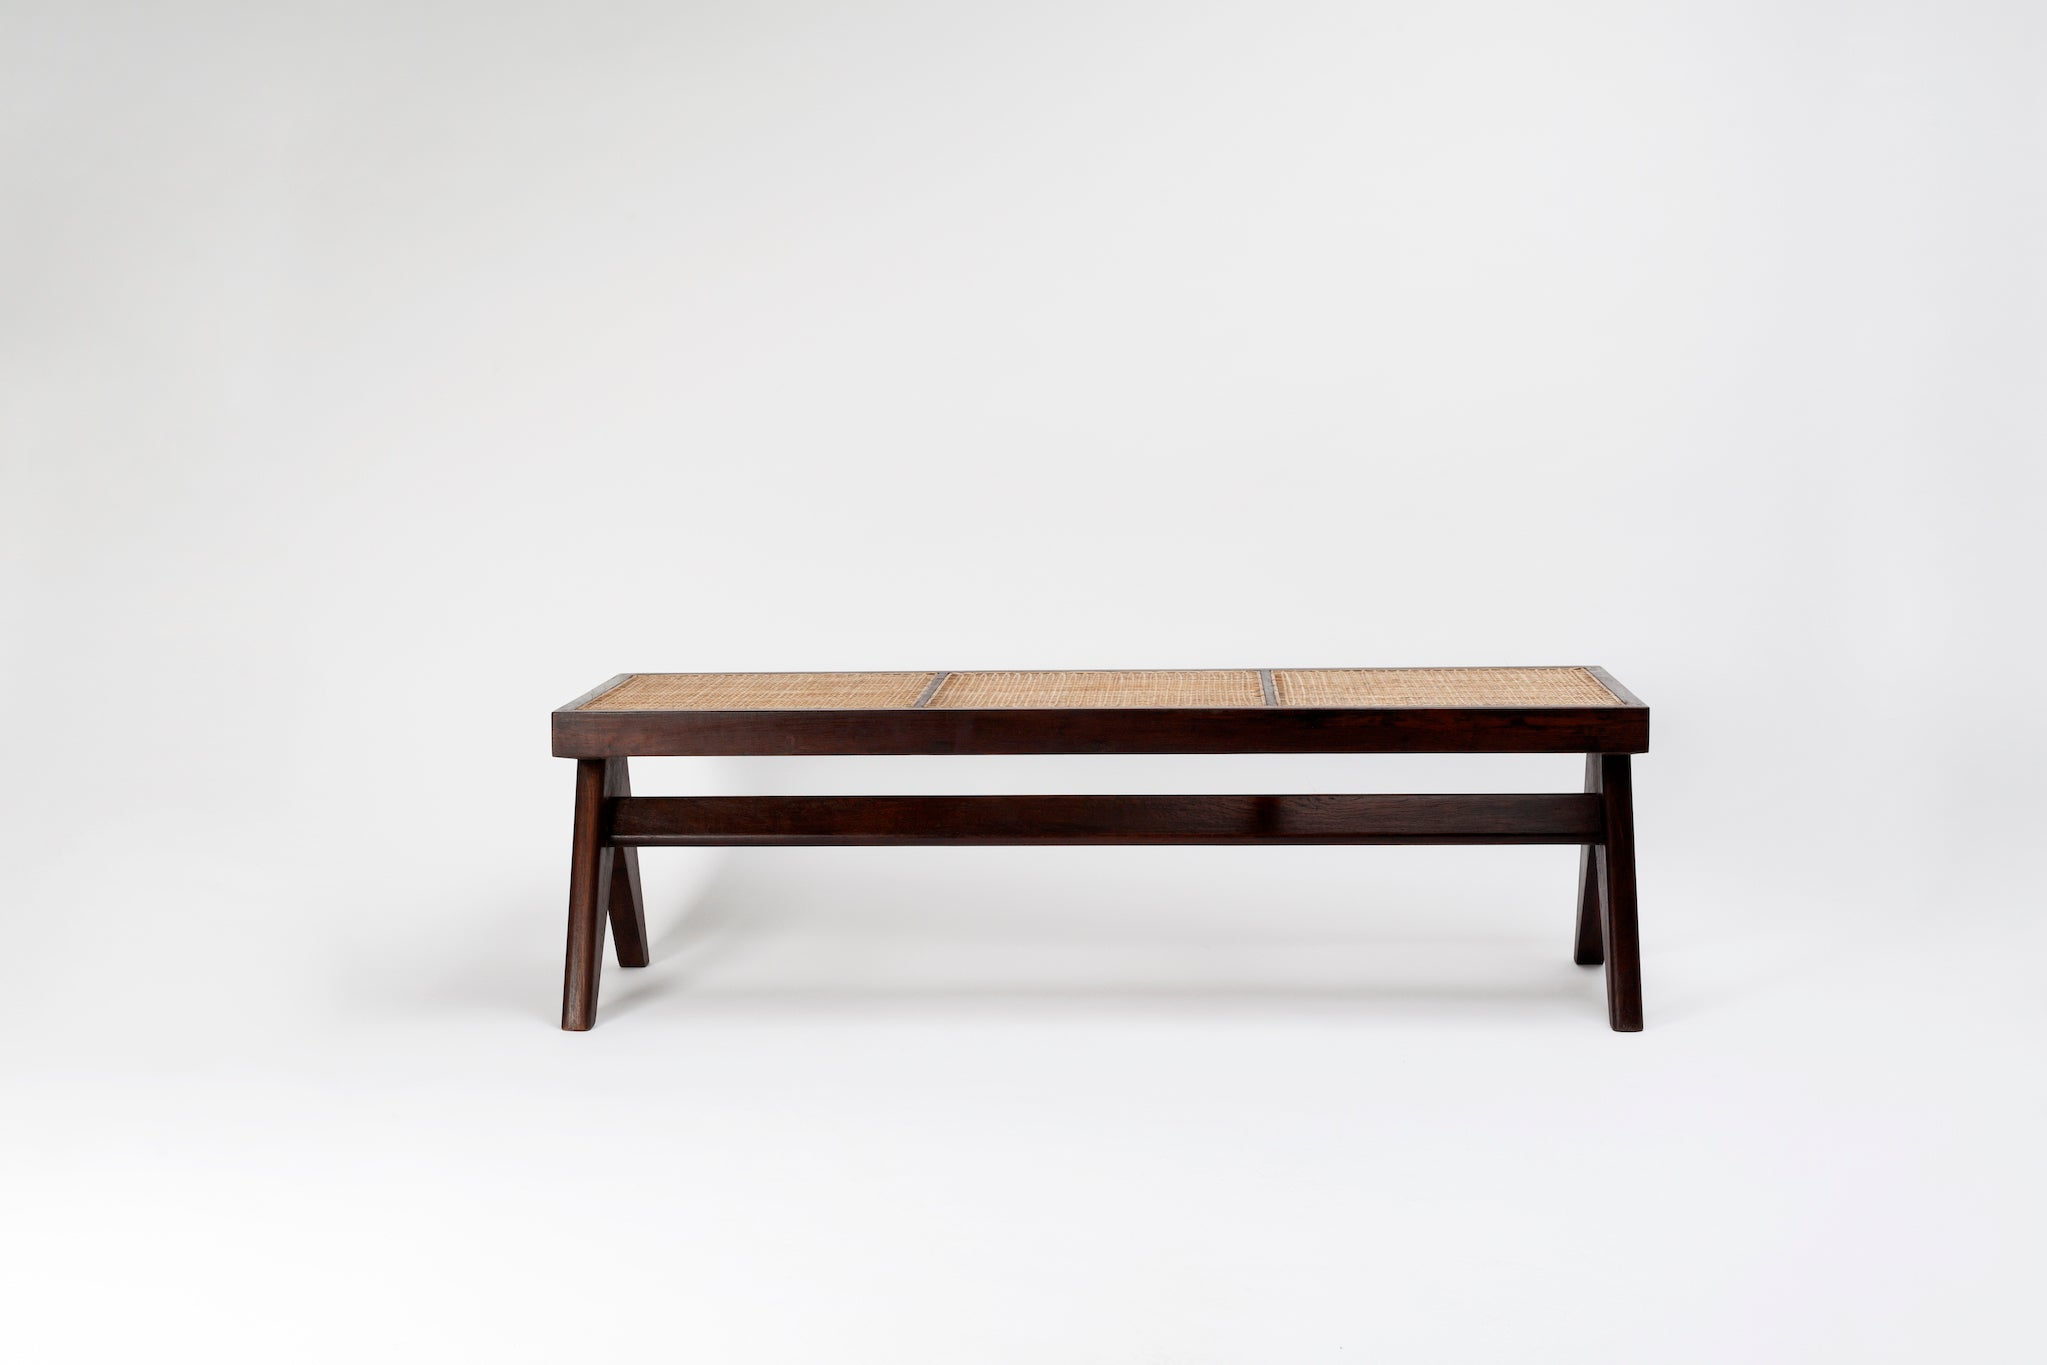 Pierre Jeanneret Bench